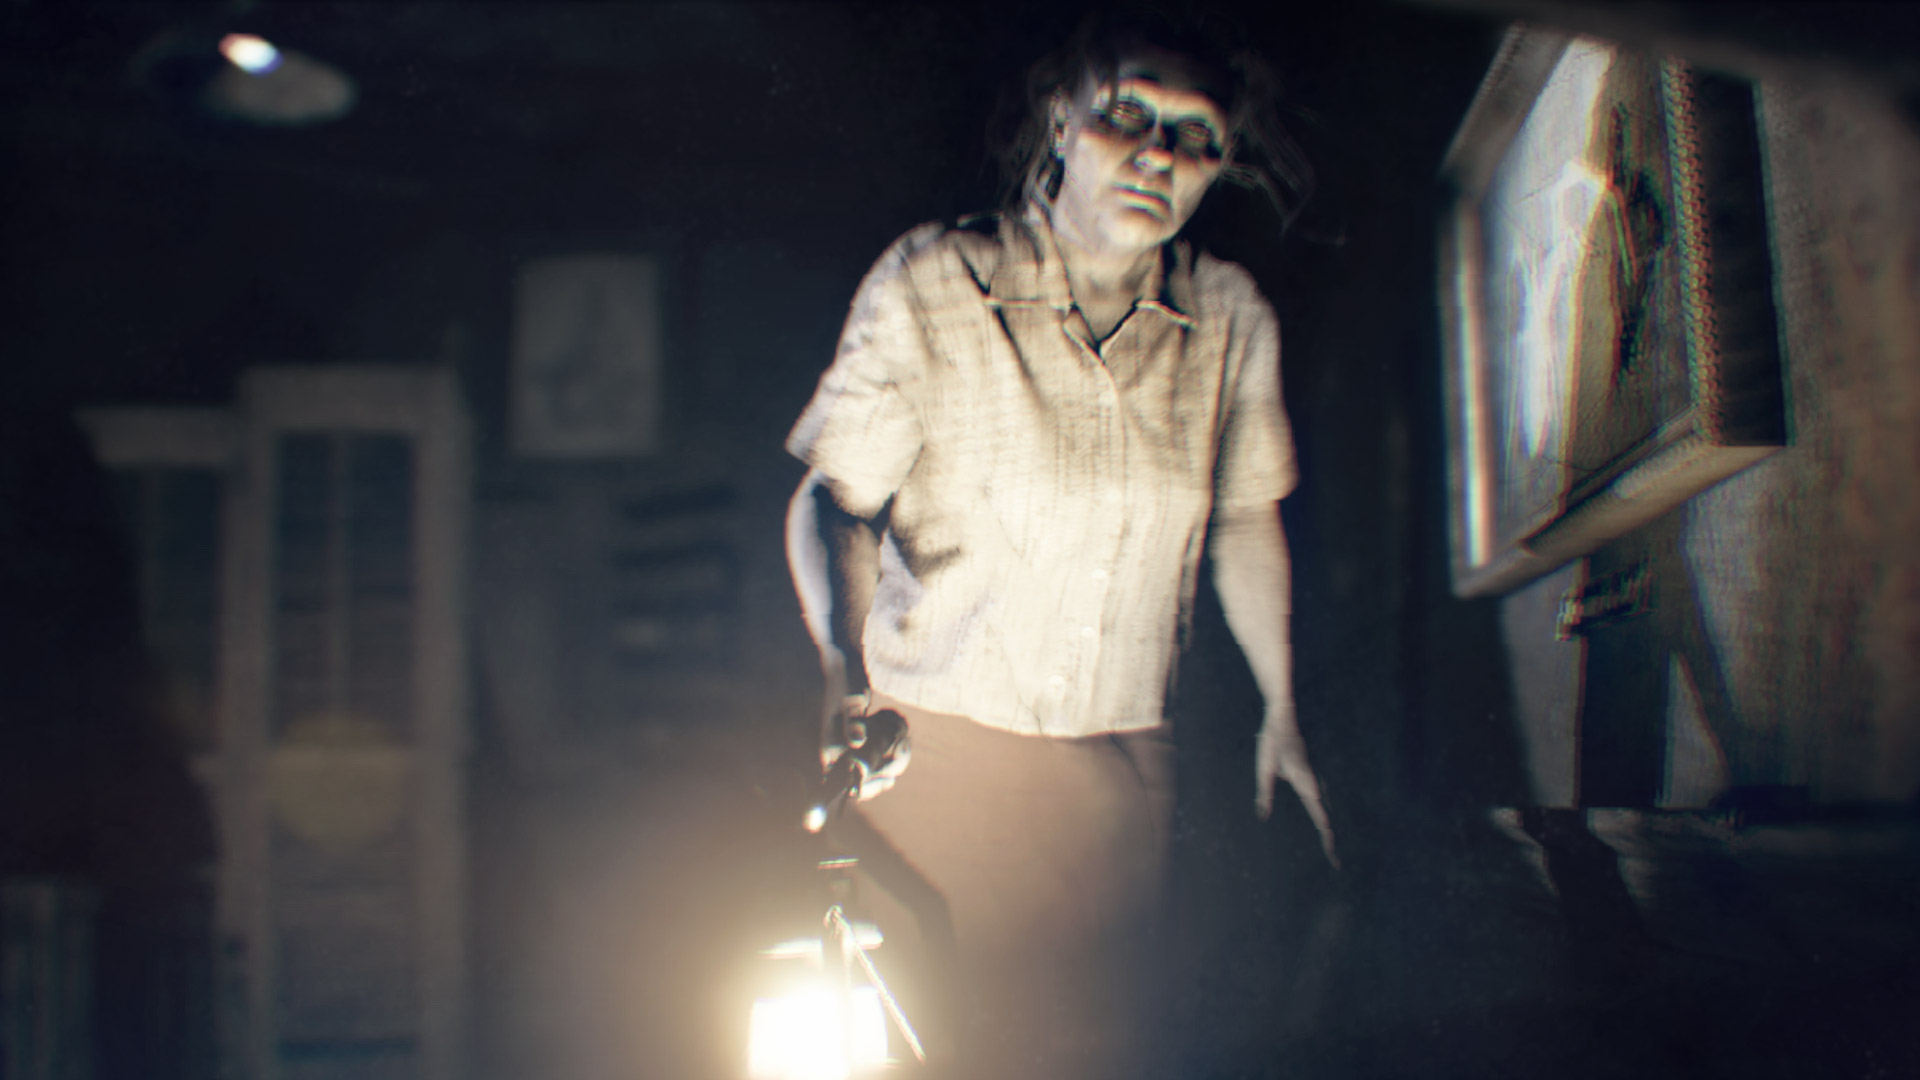 Resident Evil 7 has sold 2.5 million copies worldwide